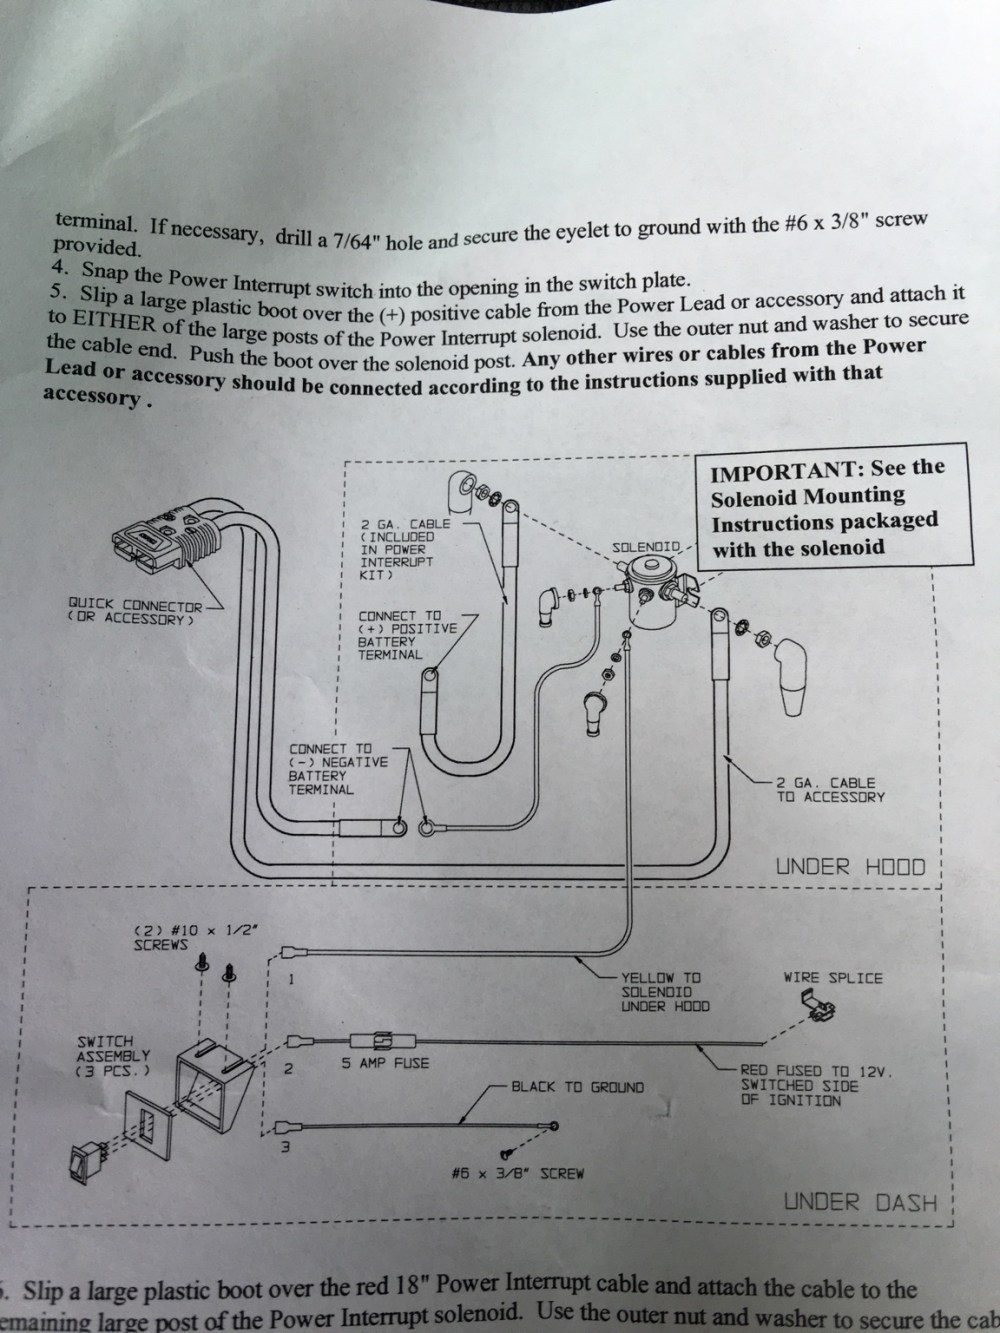 medium resolution of i have the solenoid mounted and the wiring harnesses connected